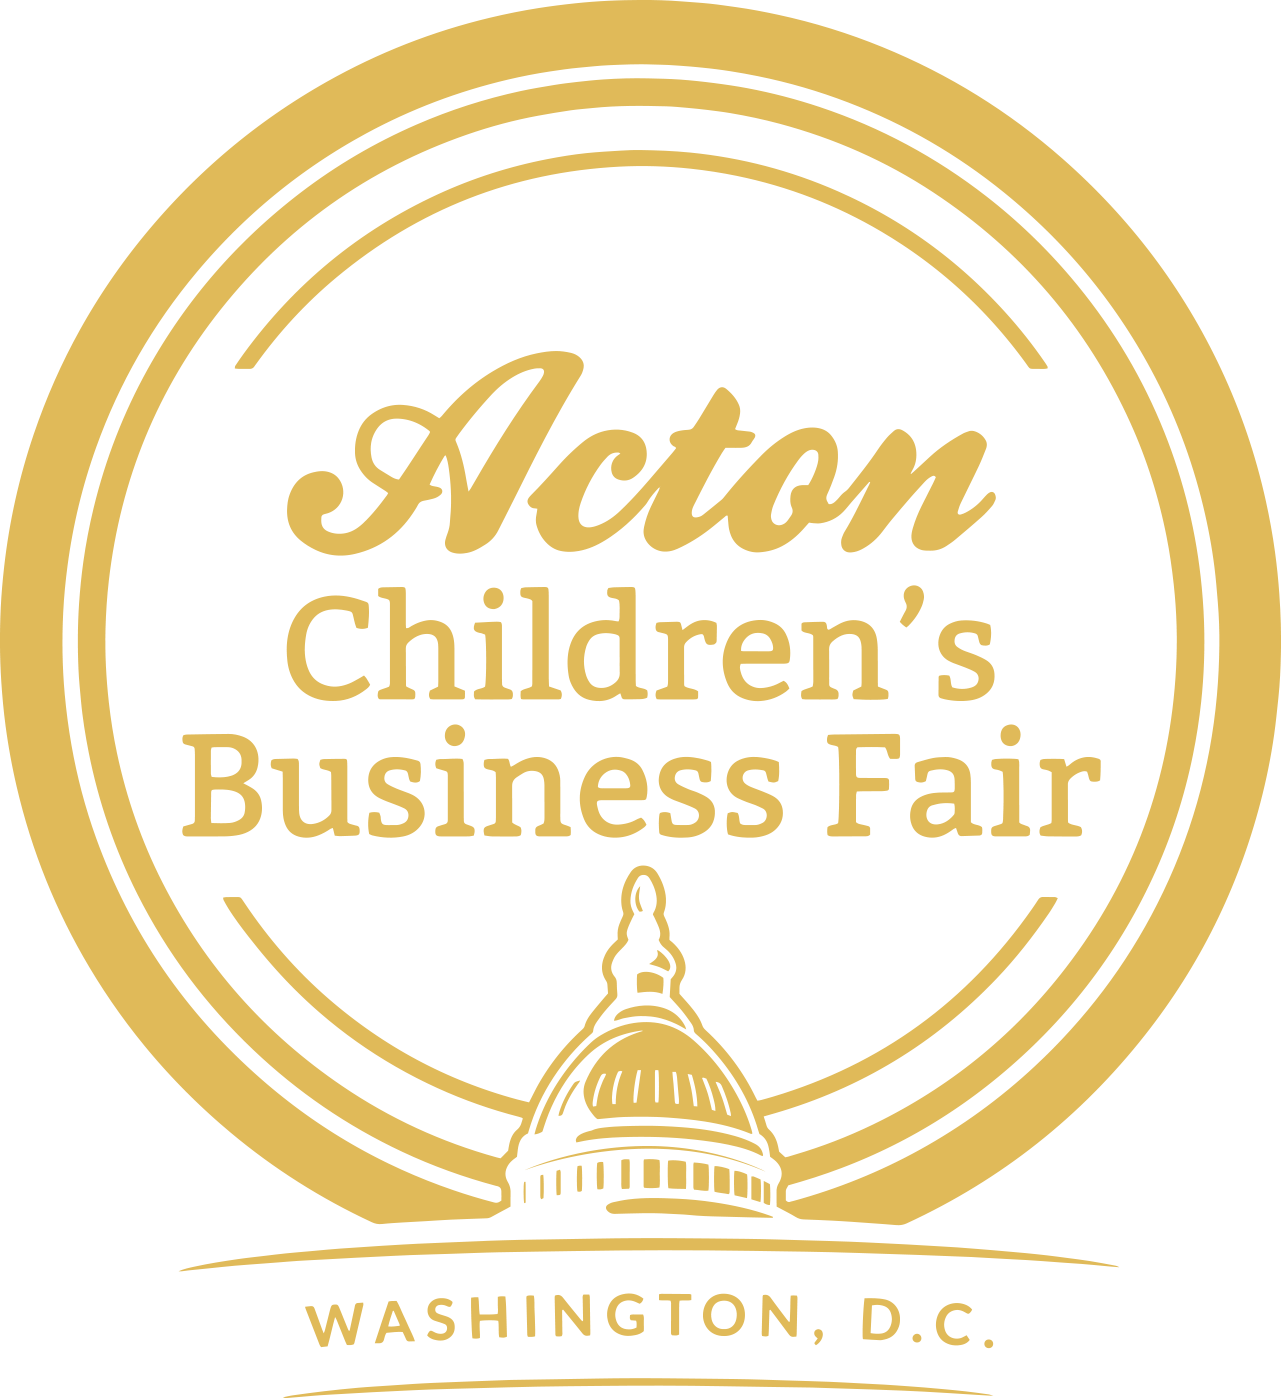 Acton childrens business fair of washington dc about acton childrens business fair of washington dc reheart Images